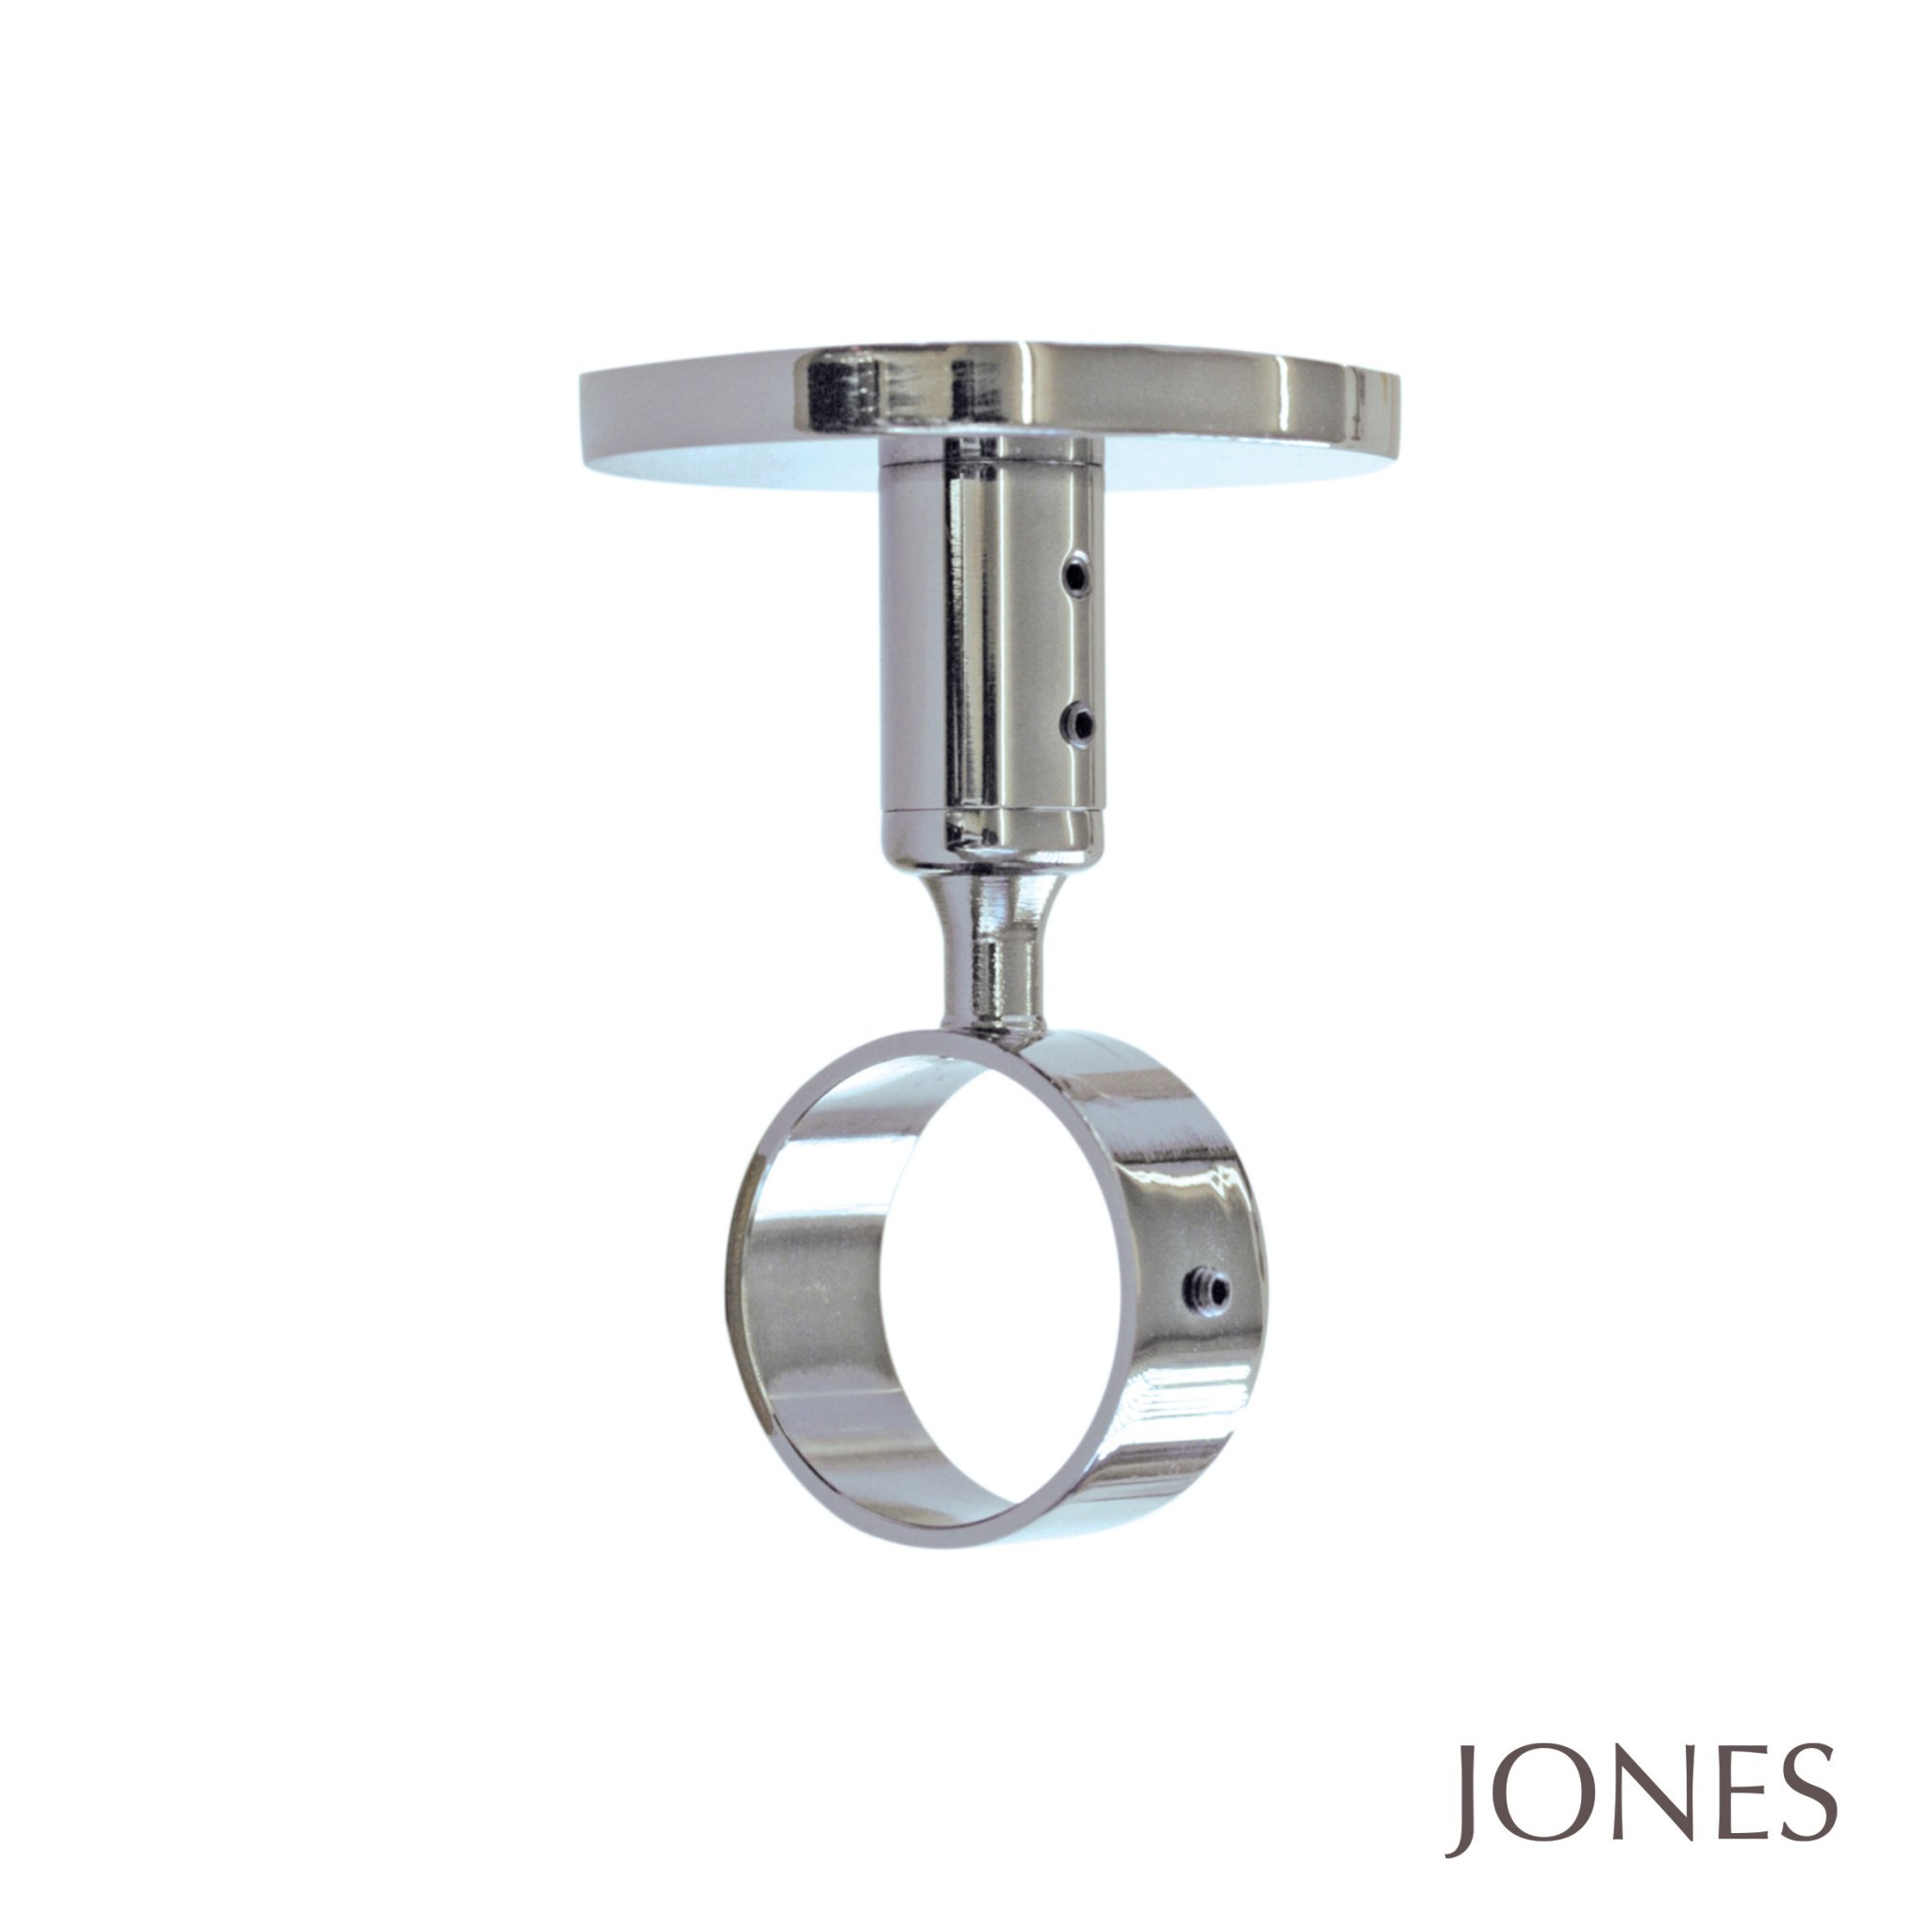 Ceiling Curtain Bracket Jones Strand 35mm Ceiling Brackets The Home Of Interiors